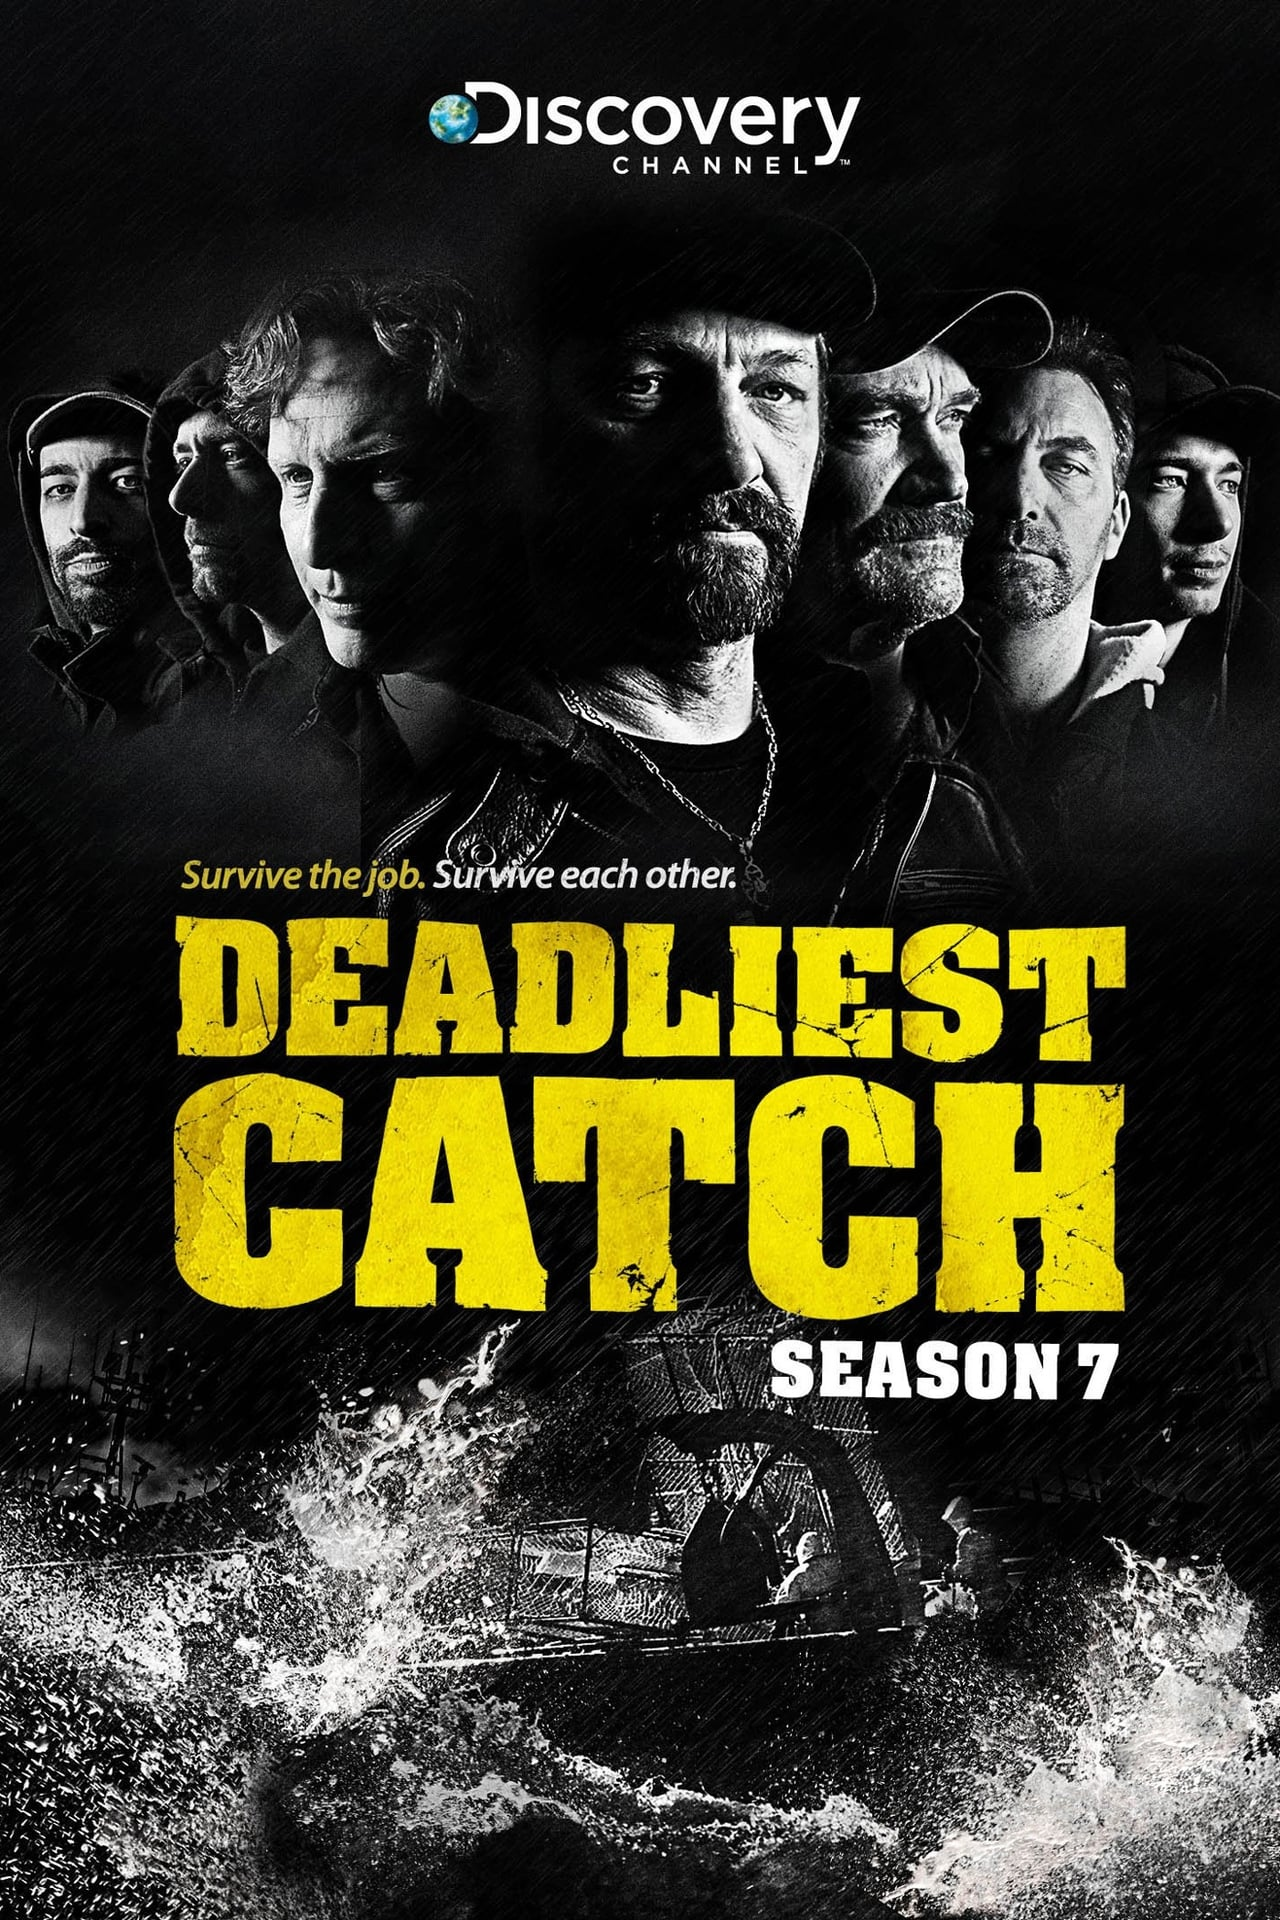 Watch Deadliest Catch Season 7 Online